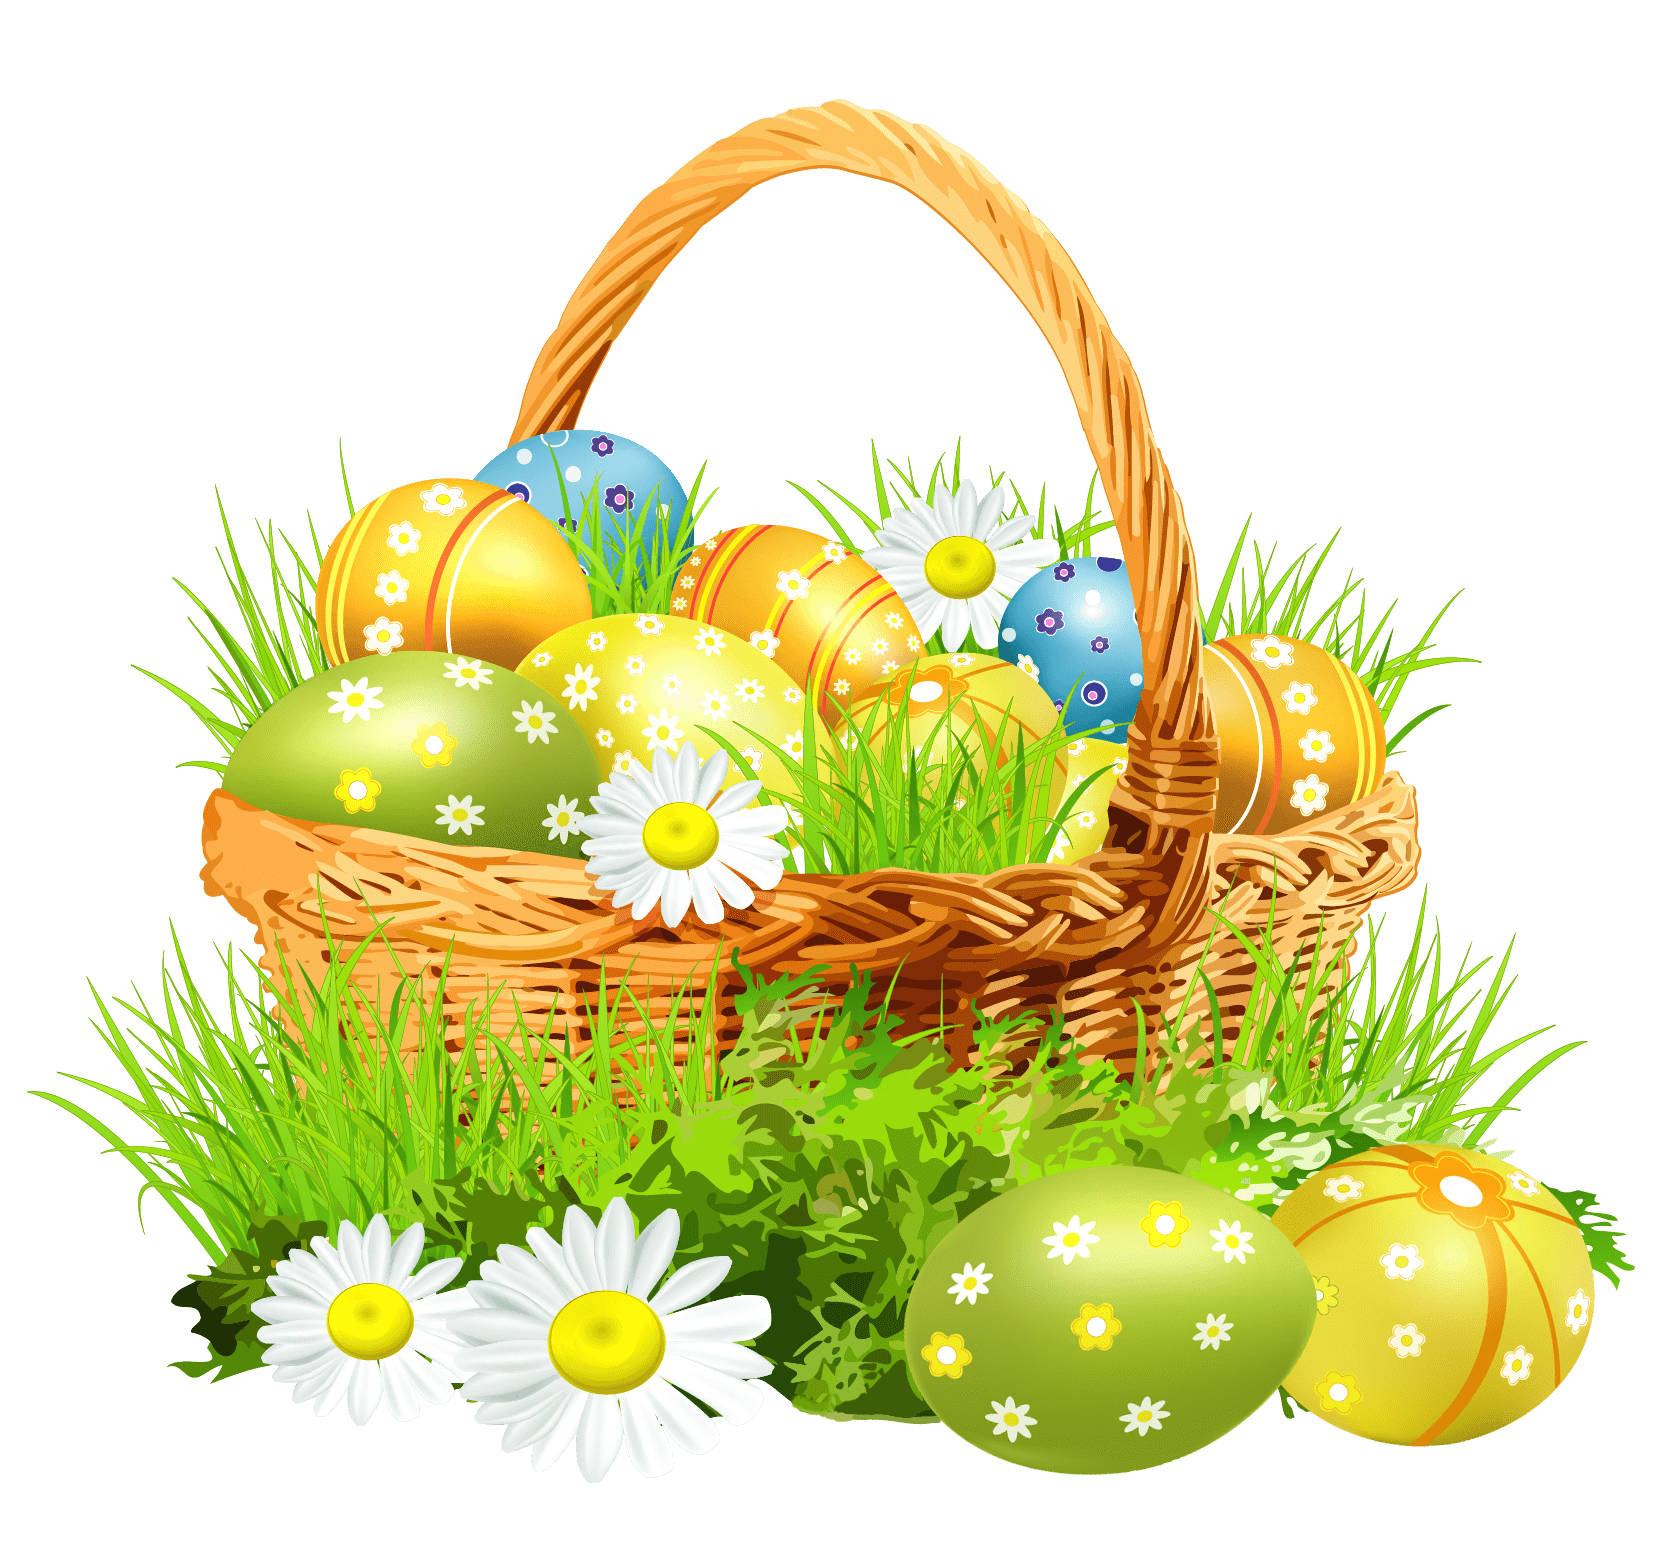 Easter Basket Flowers - Easter Bunny PNG